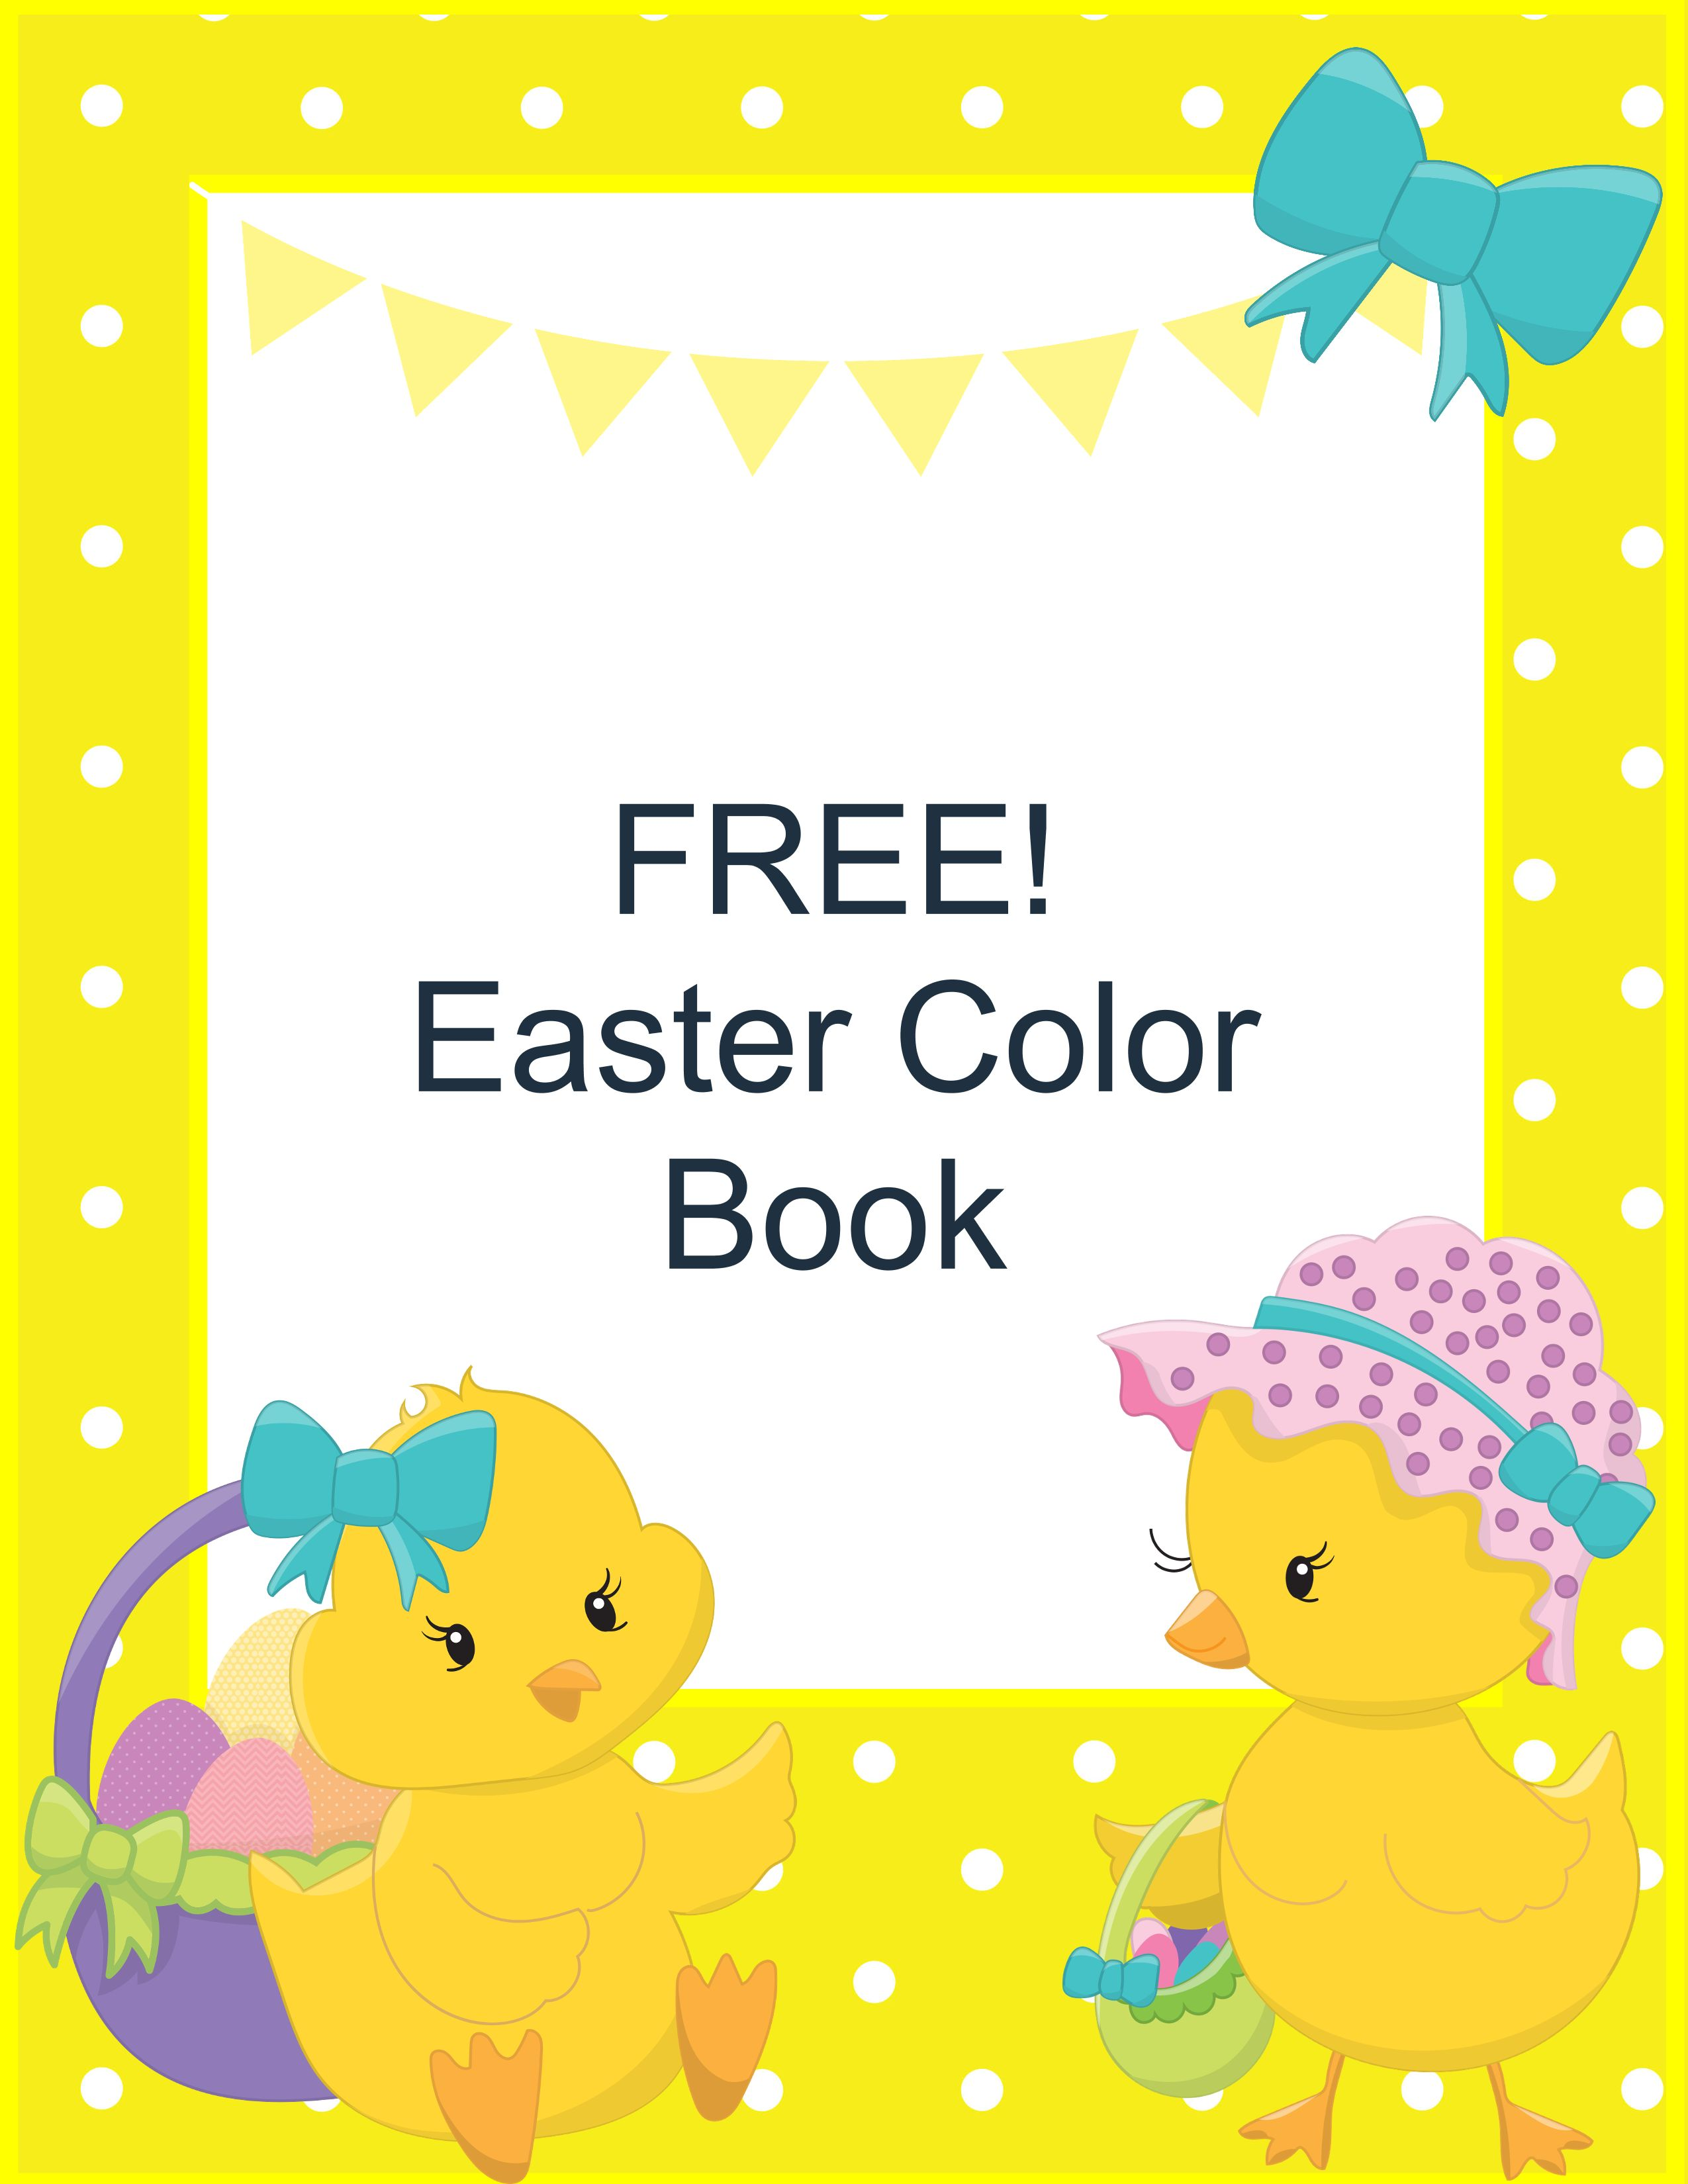 FREE Easter Coloring Book